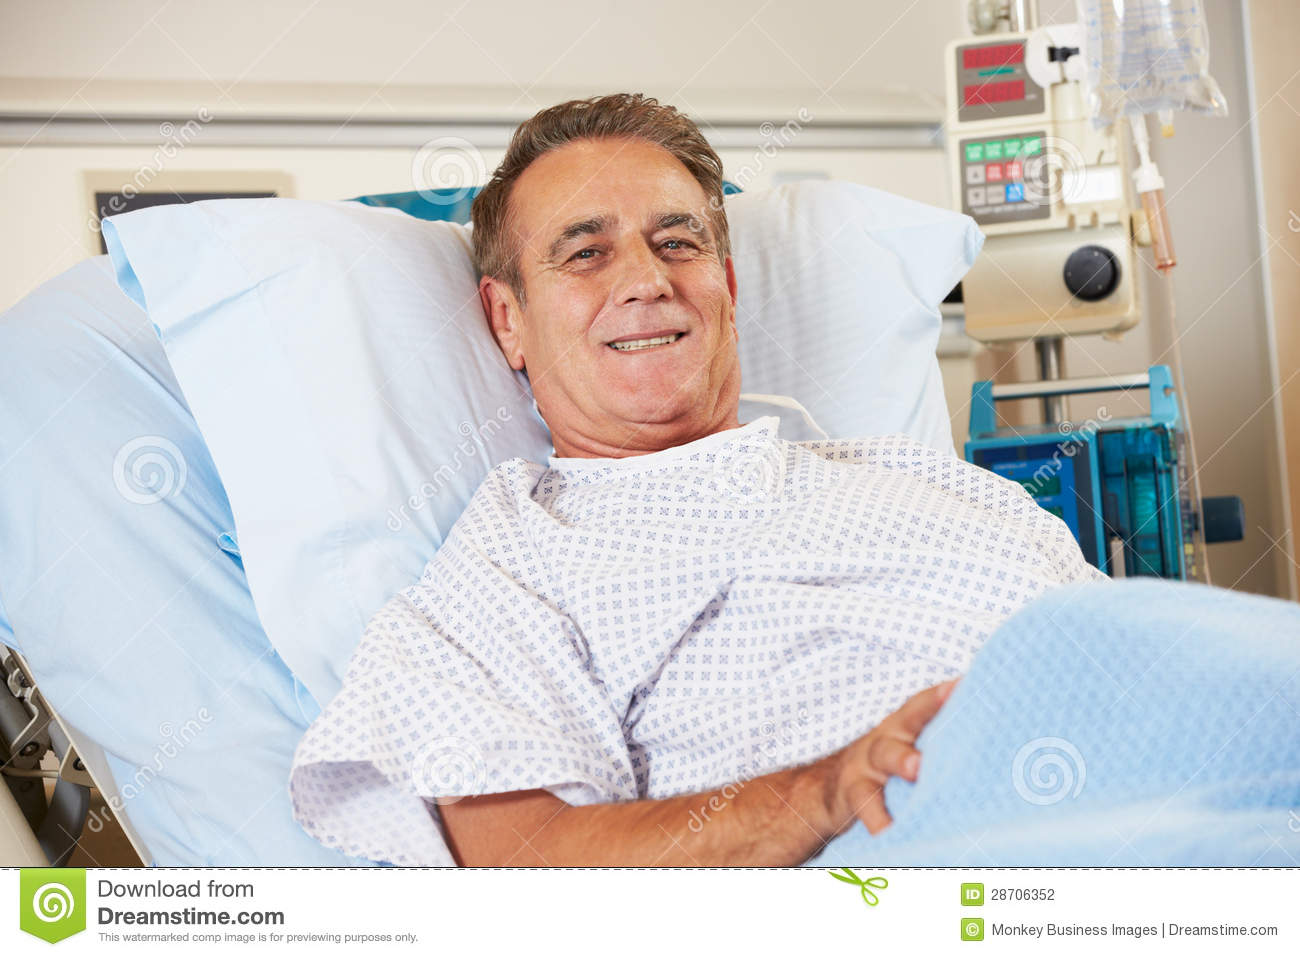 ... Patient Relaxing In Hospital Bed Stock Photography - Image: 28706352